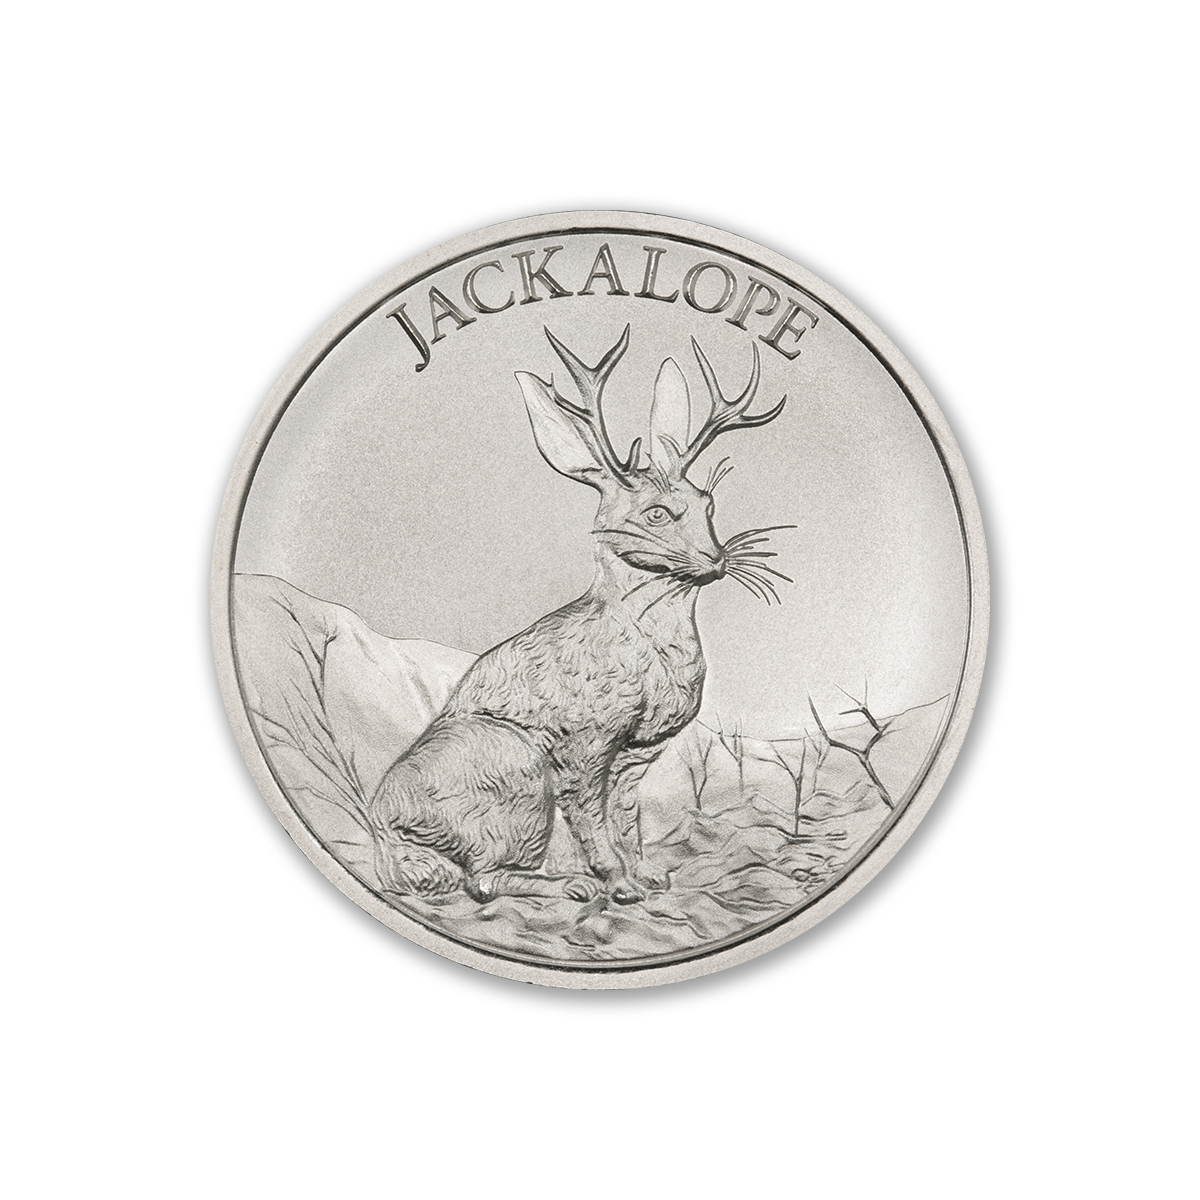 JACKALOPE – 2 TROY OUNCE – 39MM